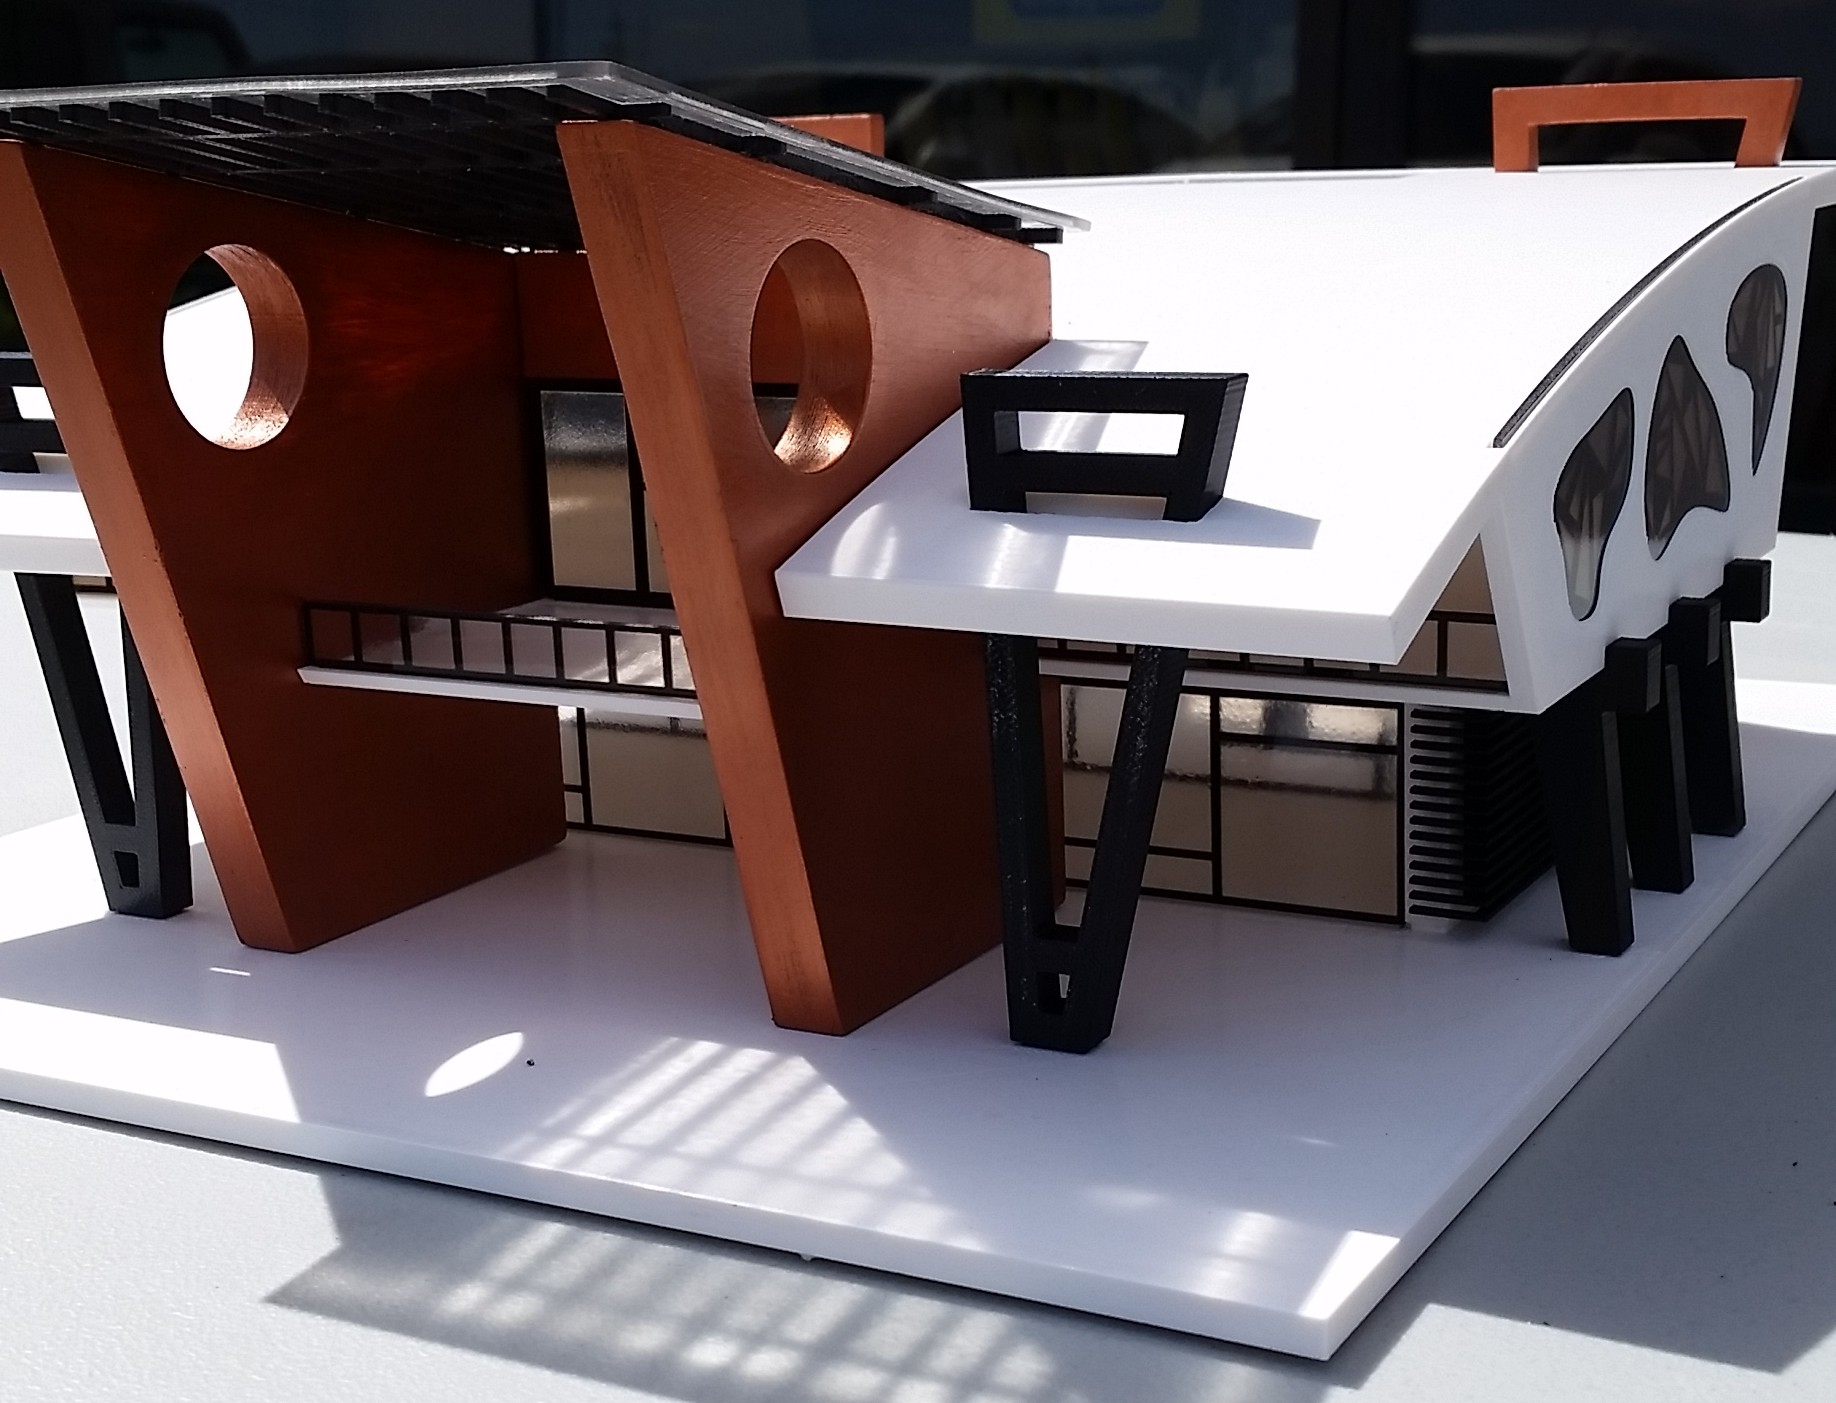 3D Printed Architectural Model Finished Assembly